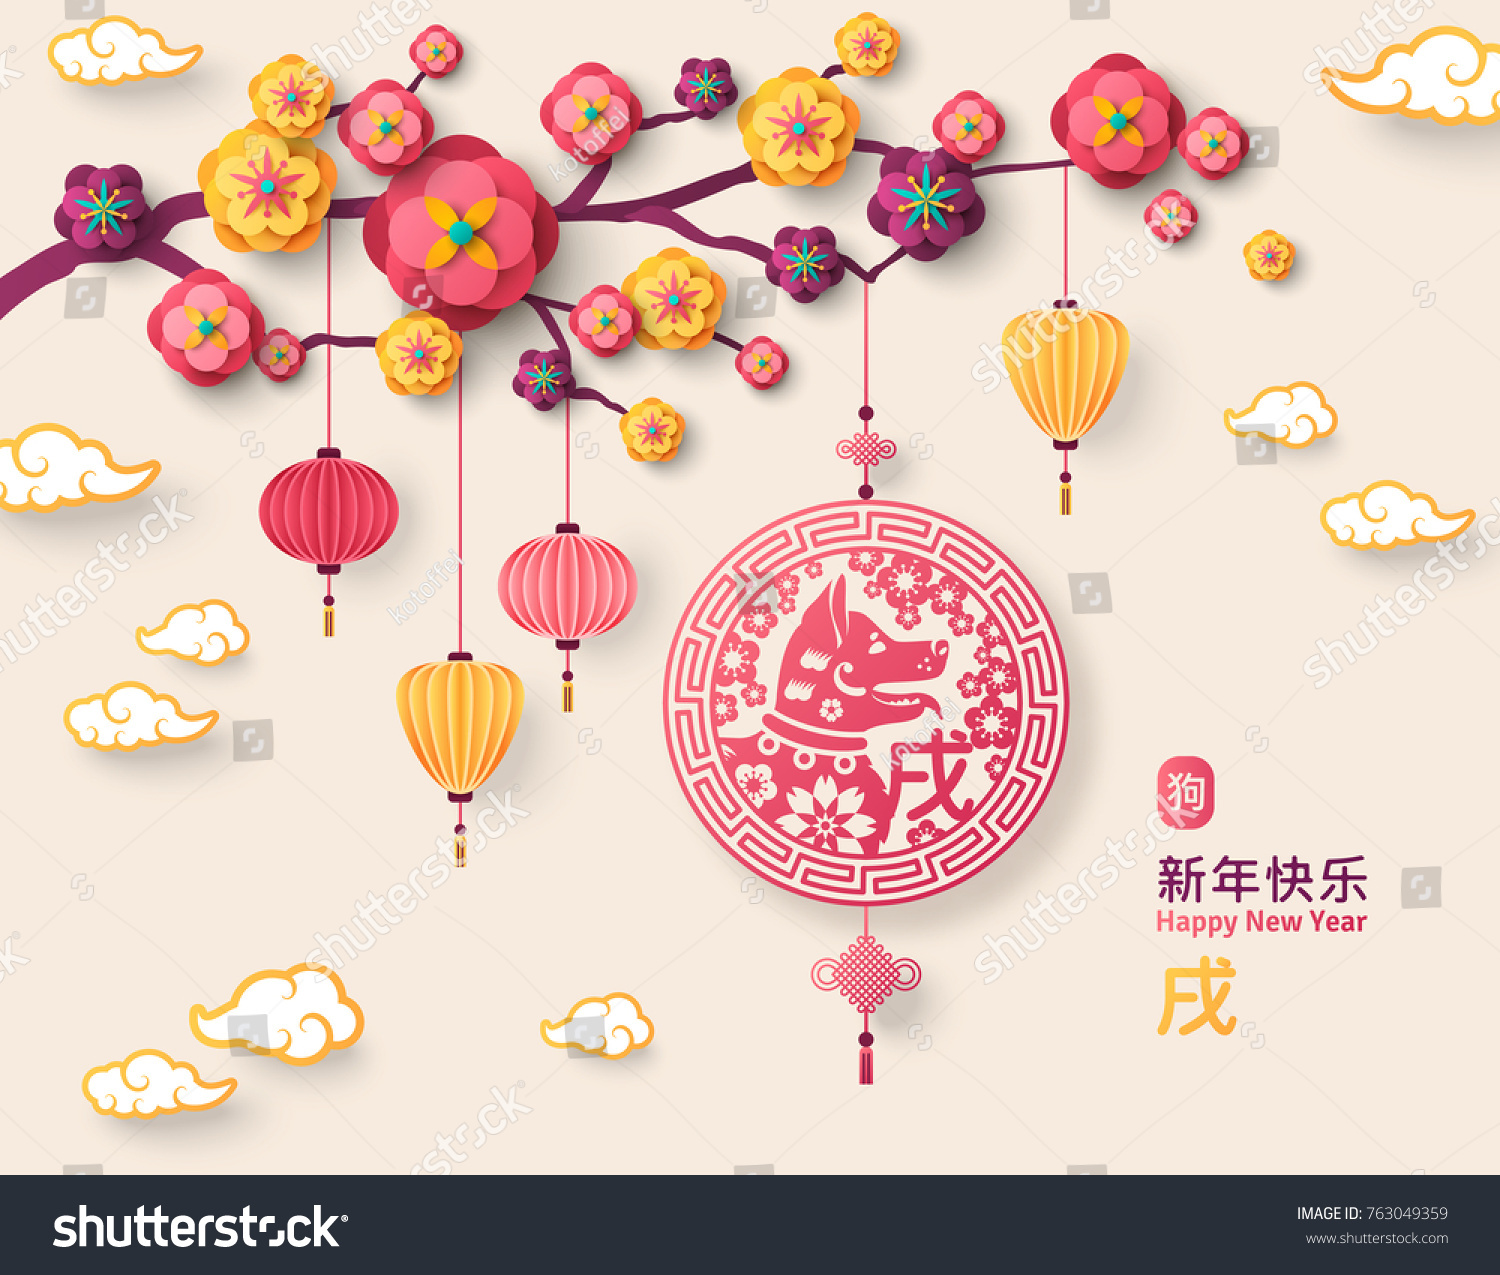 2018 chinese new year greeting card stock vector 763049359 2018 chinese new year greeting card stock vector 763049359 shutterstock m4hsunfo